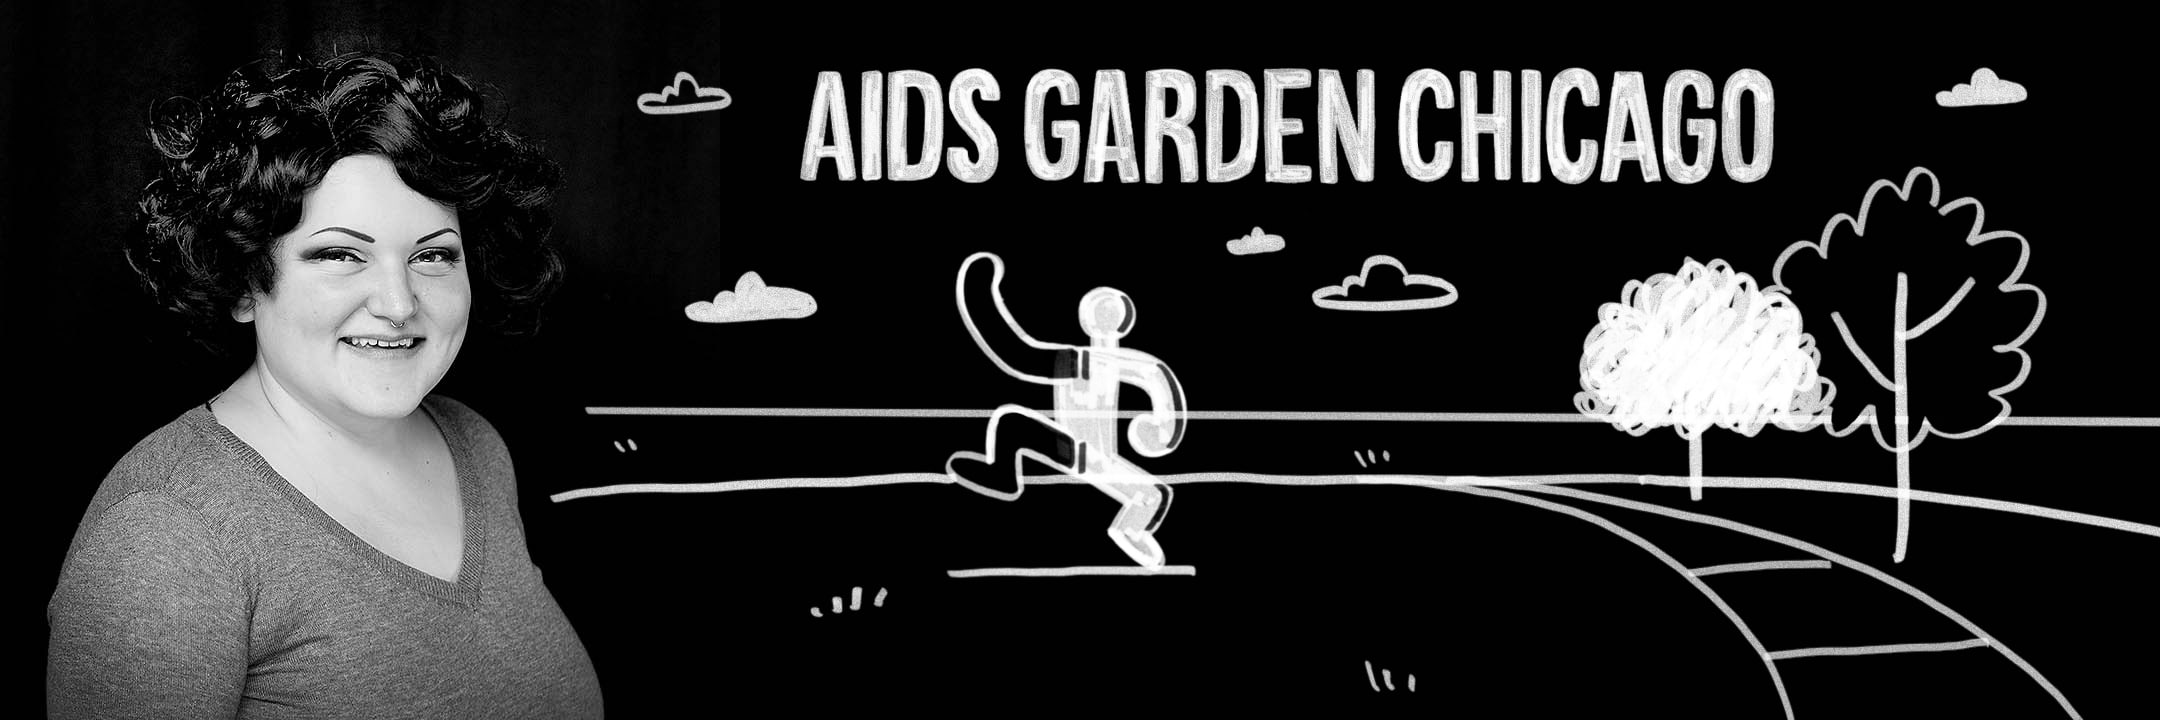 AIDS Garden Chicago charity for Giving Tuesday